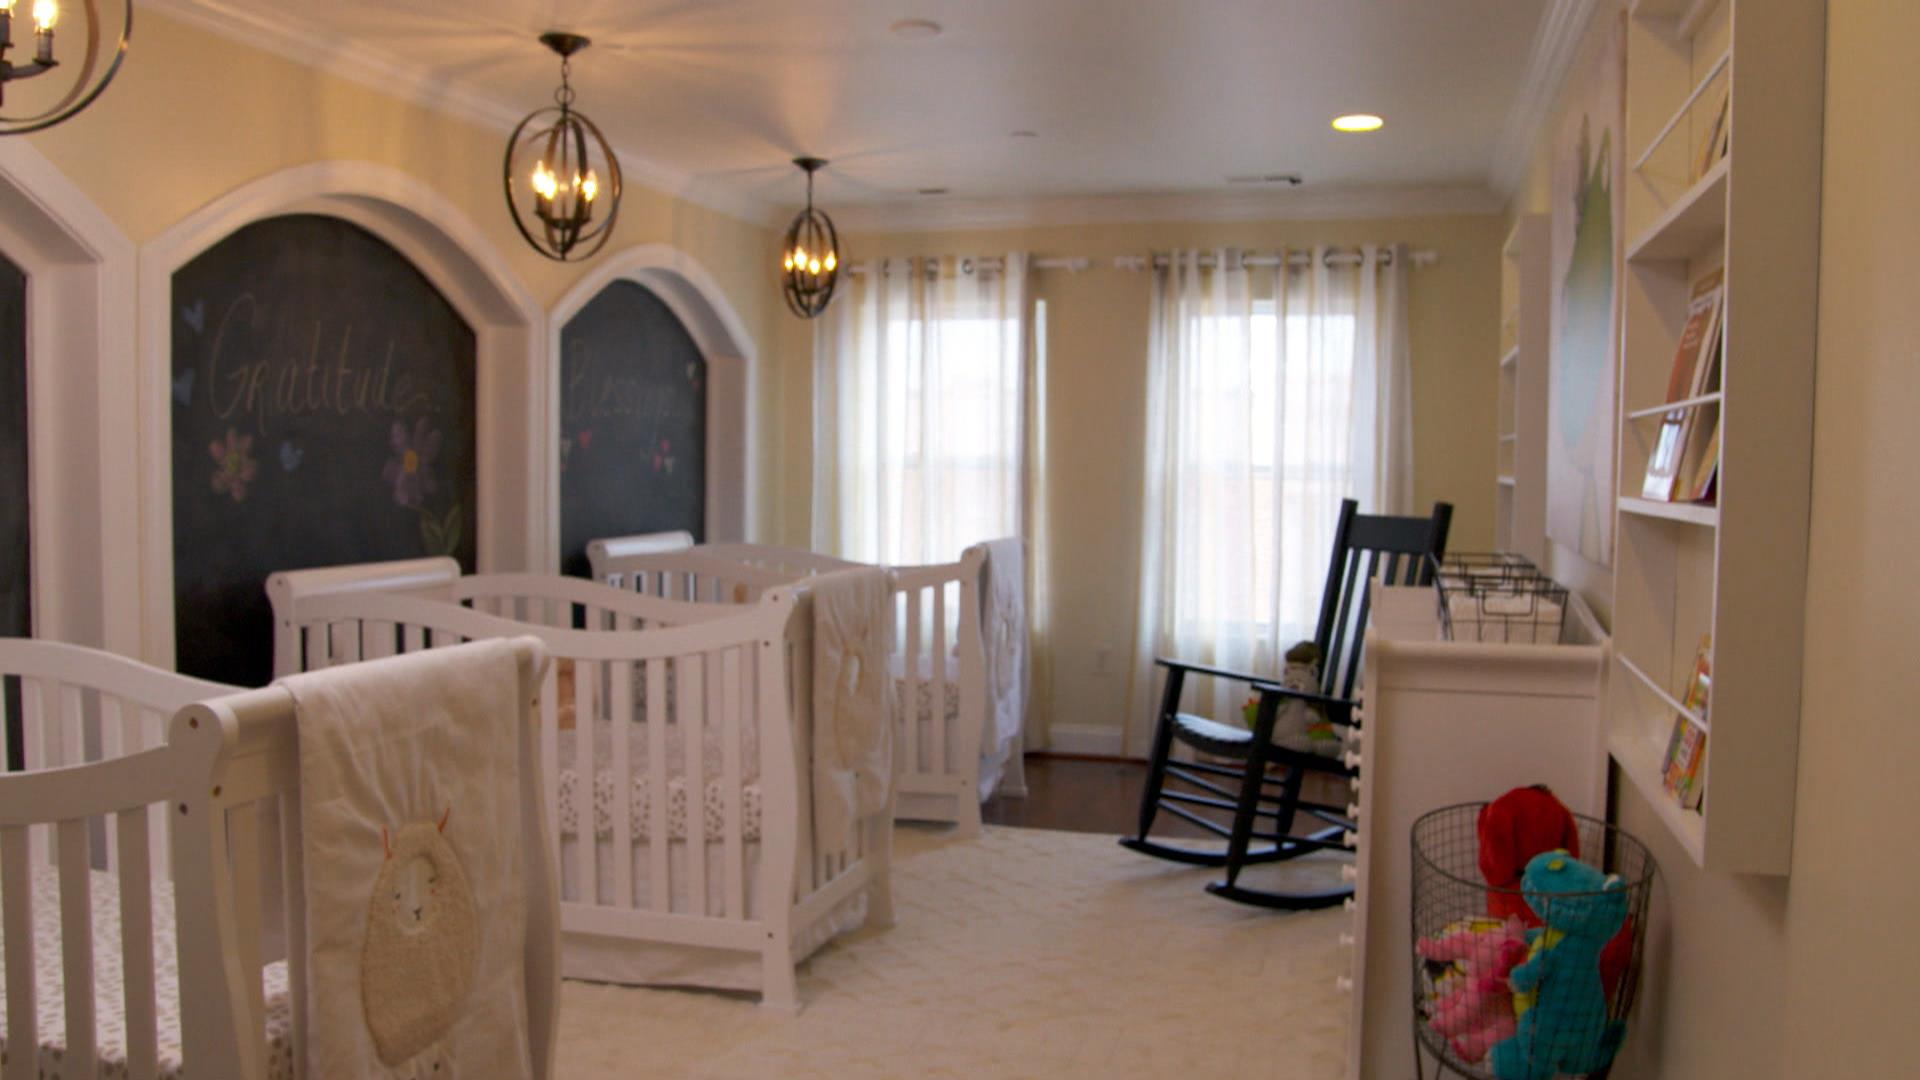 Couple Gets Much Needed Nursery Renovation Ahead Of